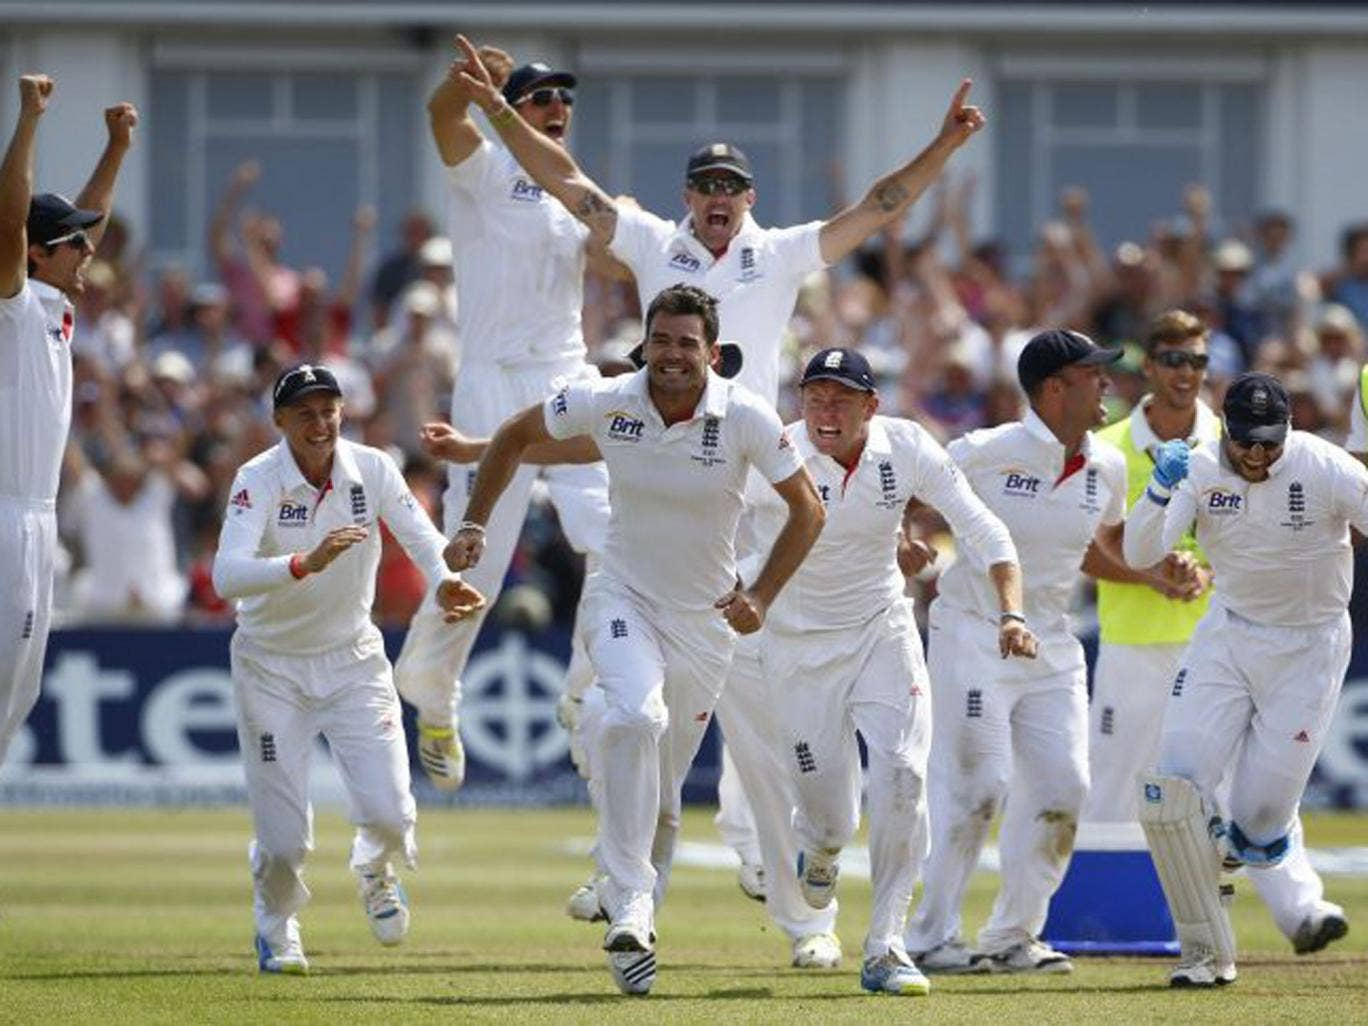 England celebrate their victory after a compelling first Test